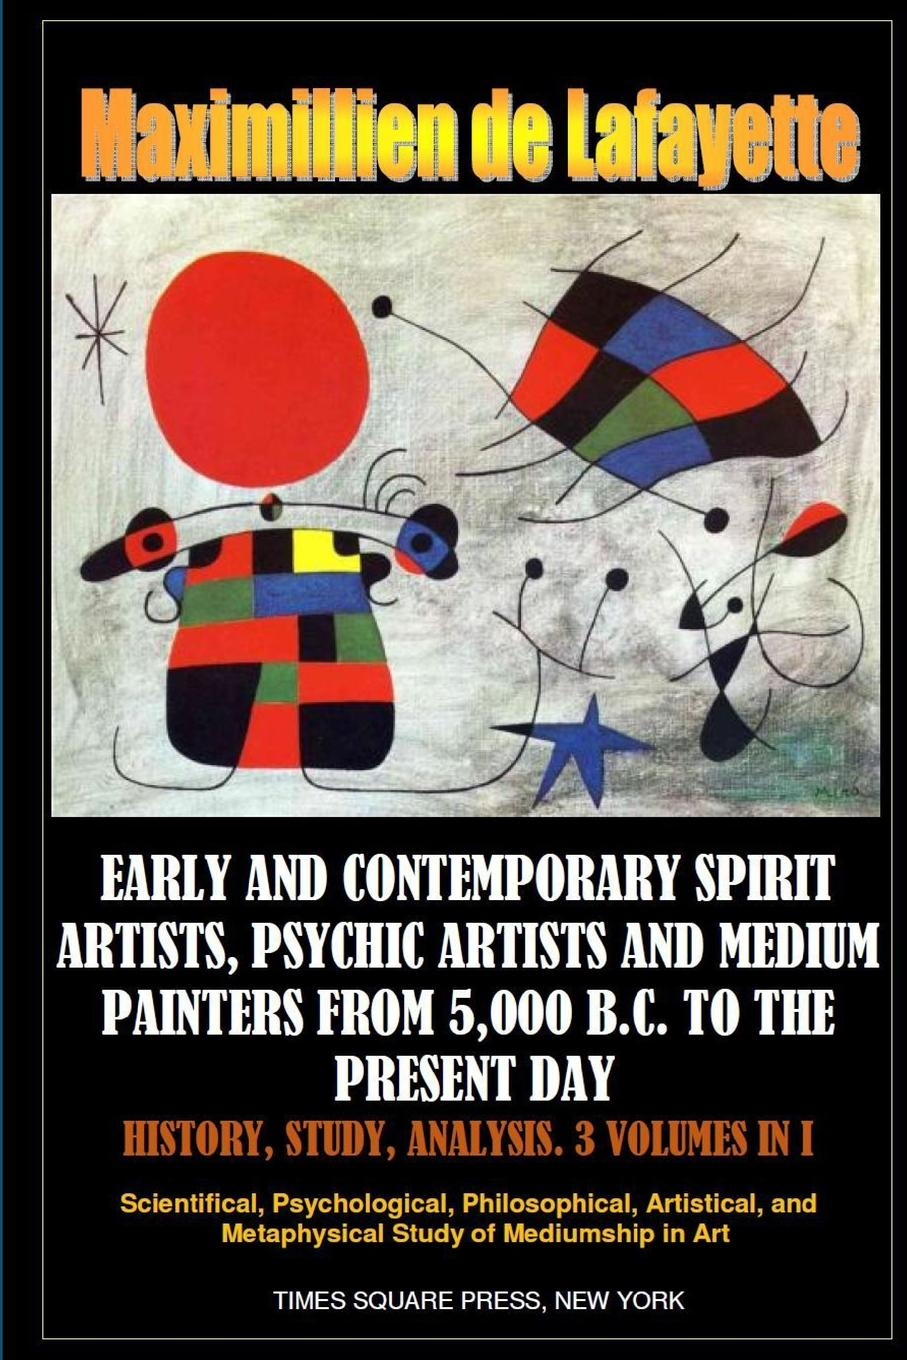 Maximillien de Lafayette Early and contemporary spirit artists, psychic artists and medium painters from 5,000 B.C. to the present day. History, Study, Analysis maximillien de lafayette vol two 10th edition history and anthology of french song and cabaret from 1730 to the present day